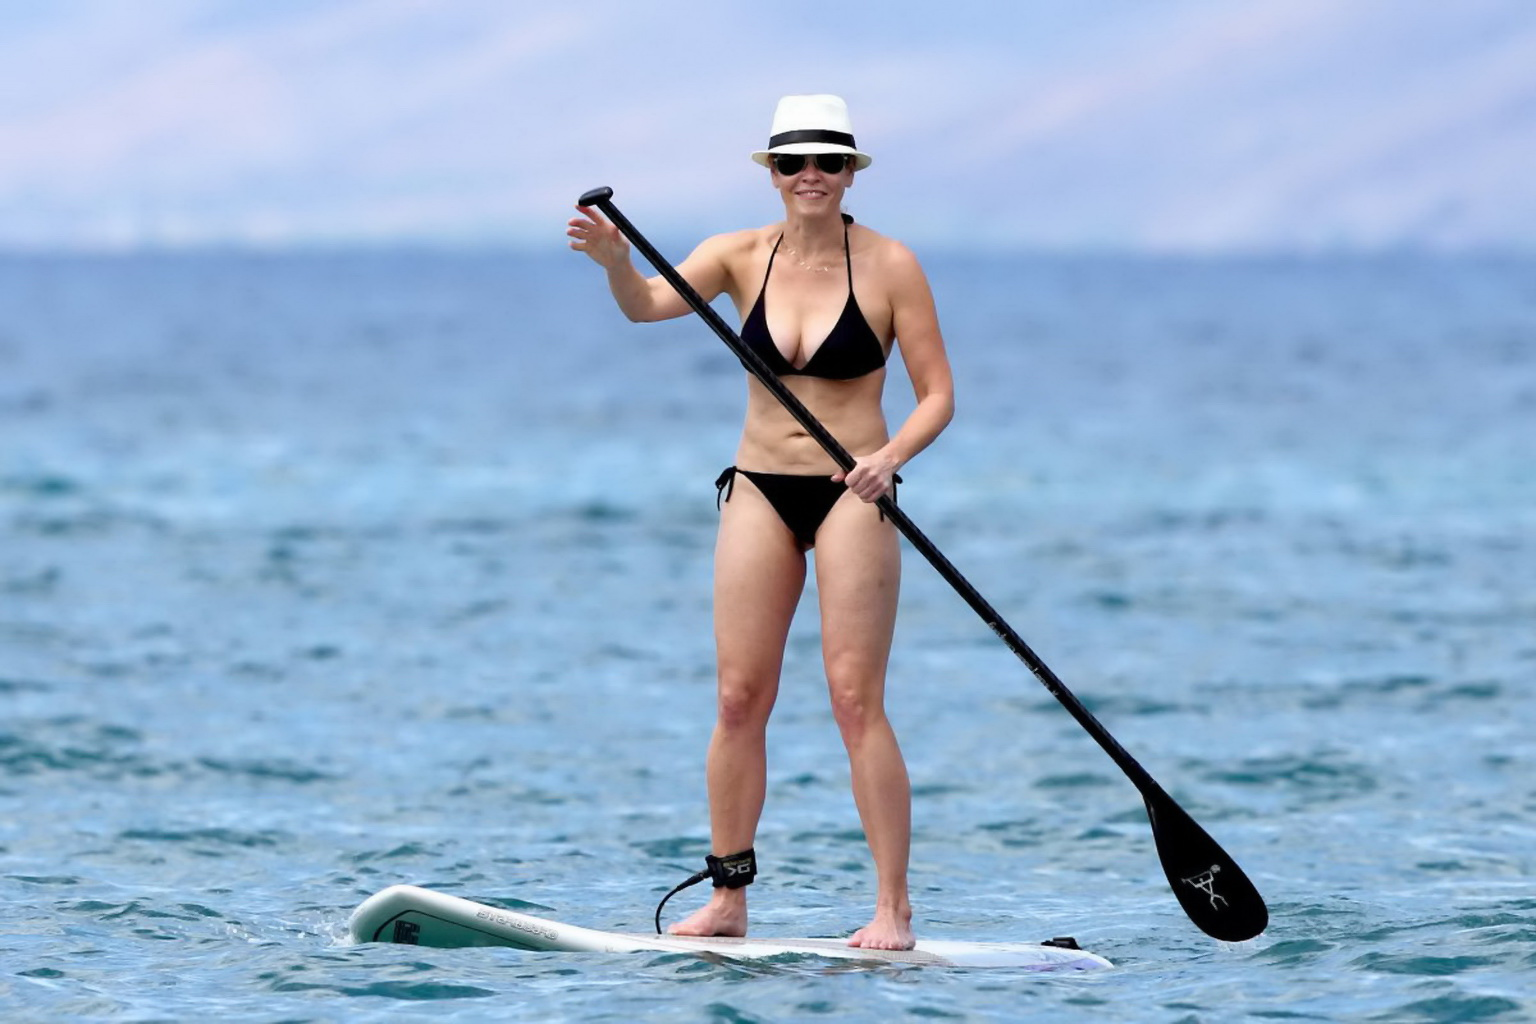 Chelsea handler and bikini